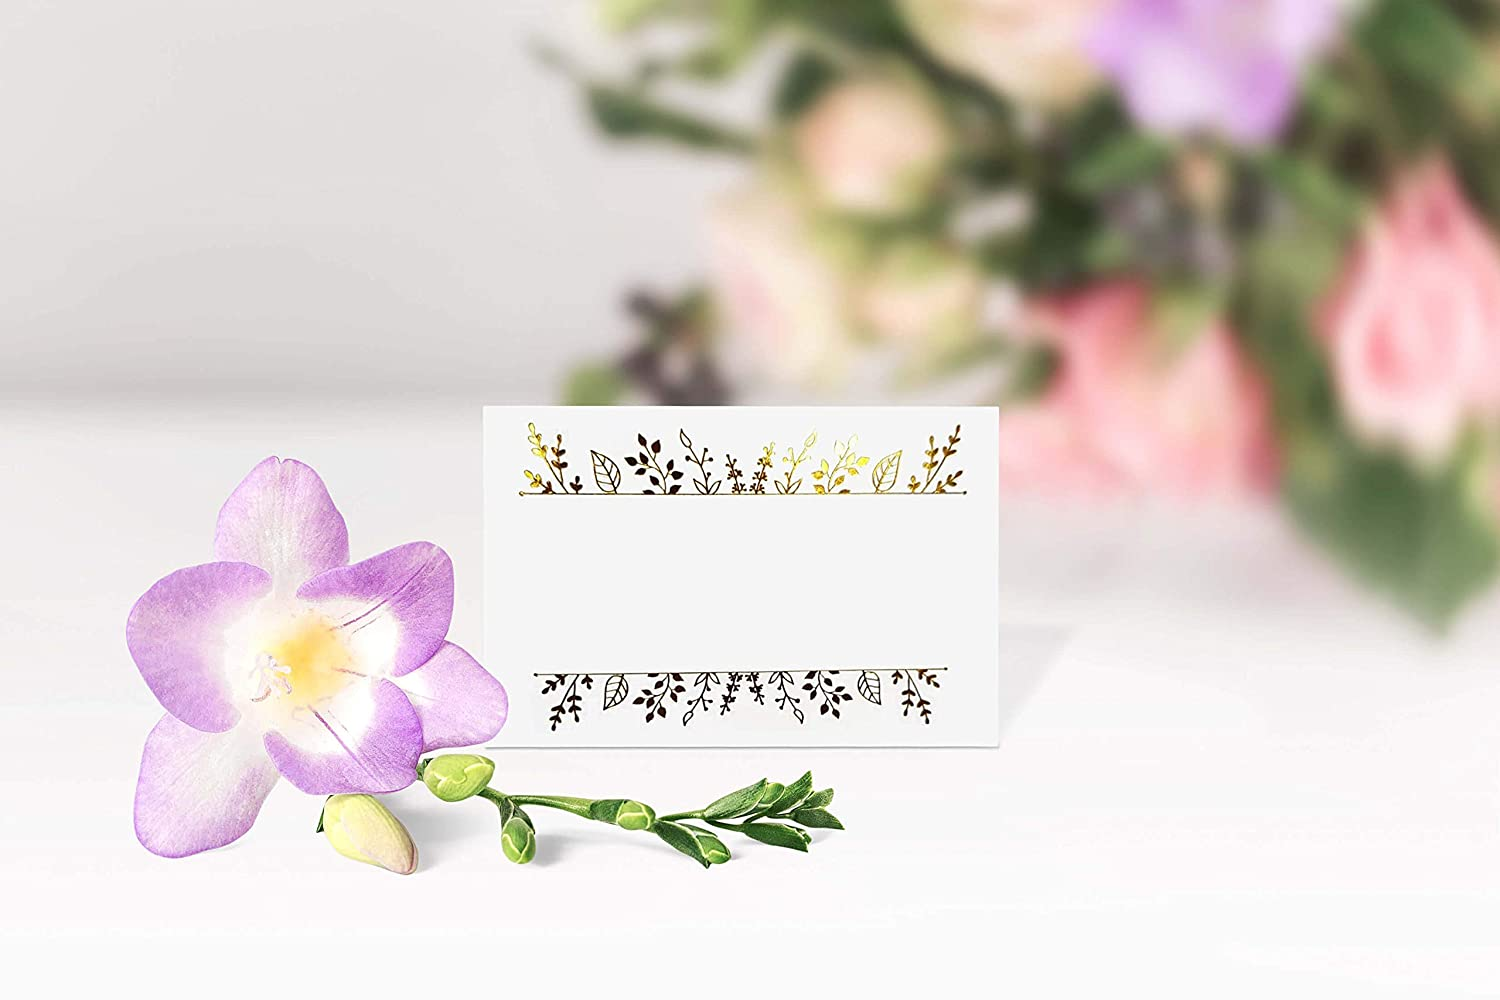 Banquets Large 2.5 x 3.75 inches Name Place Cards. Tented Table Seating Cards Perfect for Wedding and Any Event 100 Gold Foil Place Cards Party or Reception